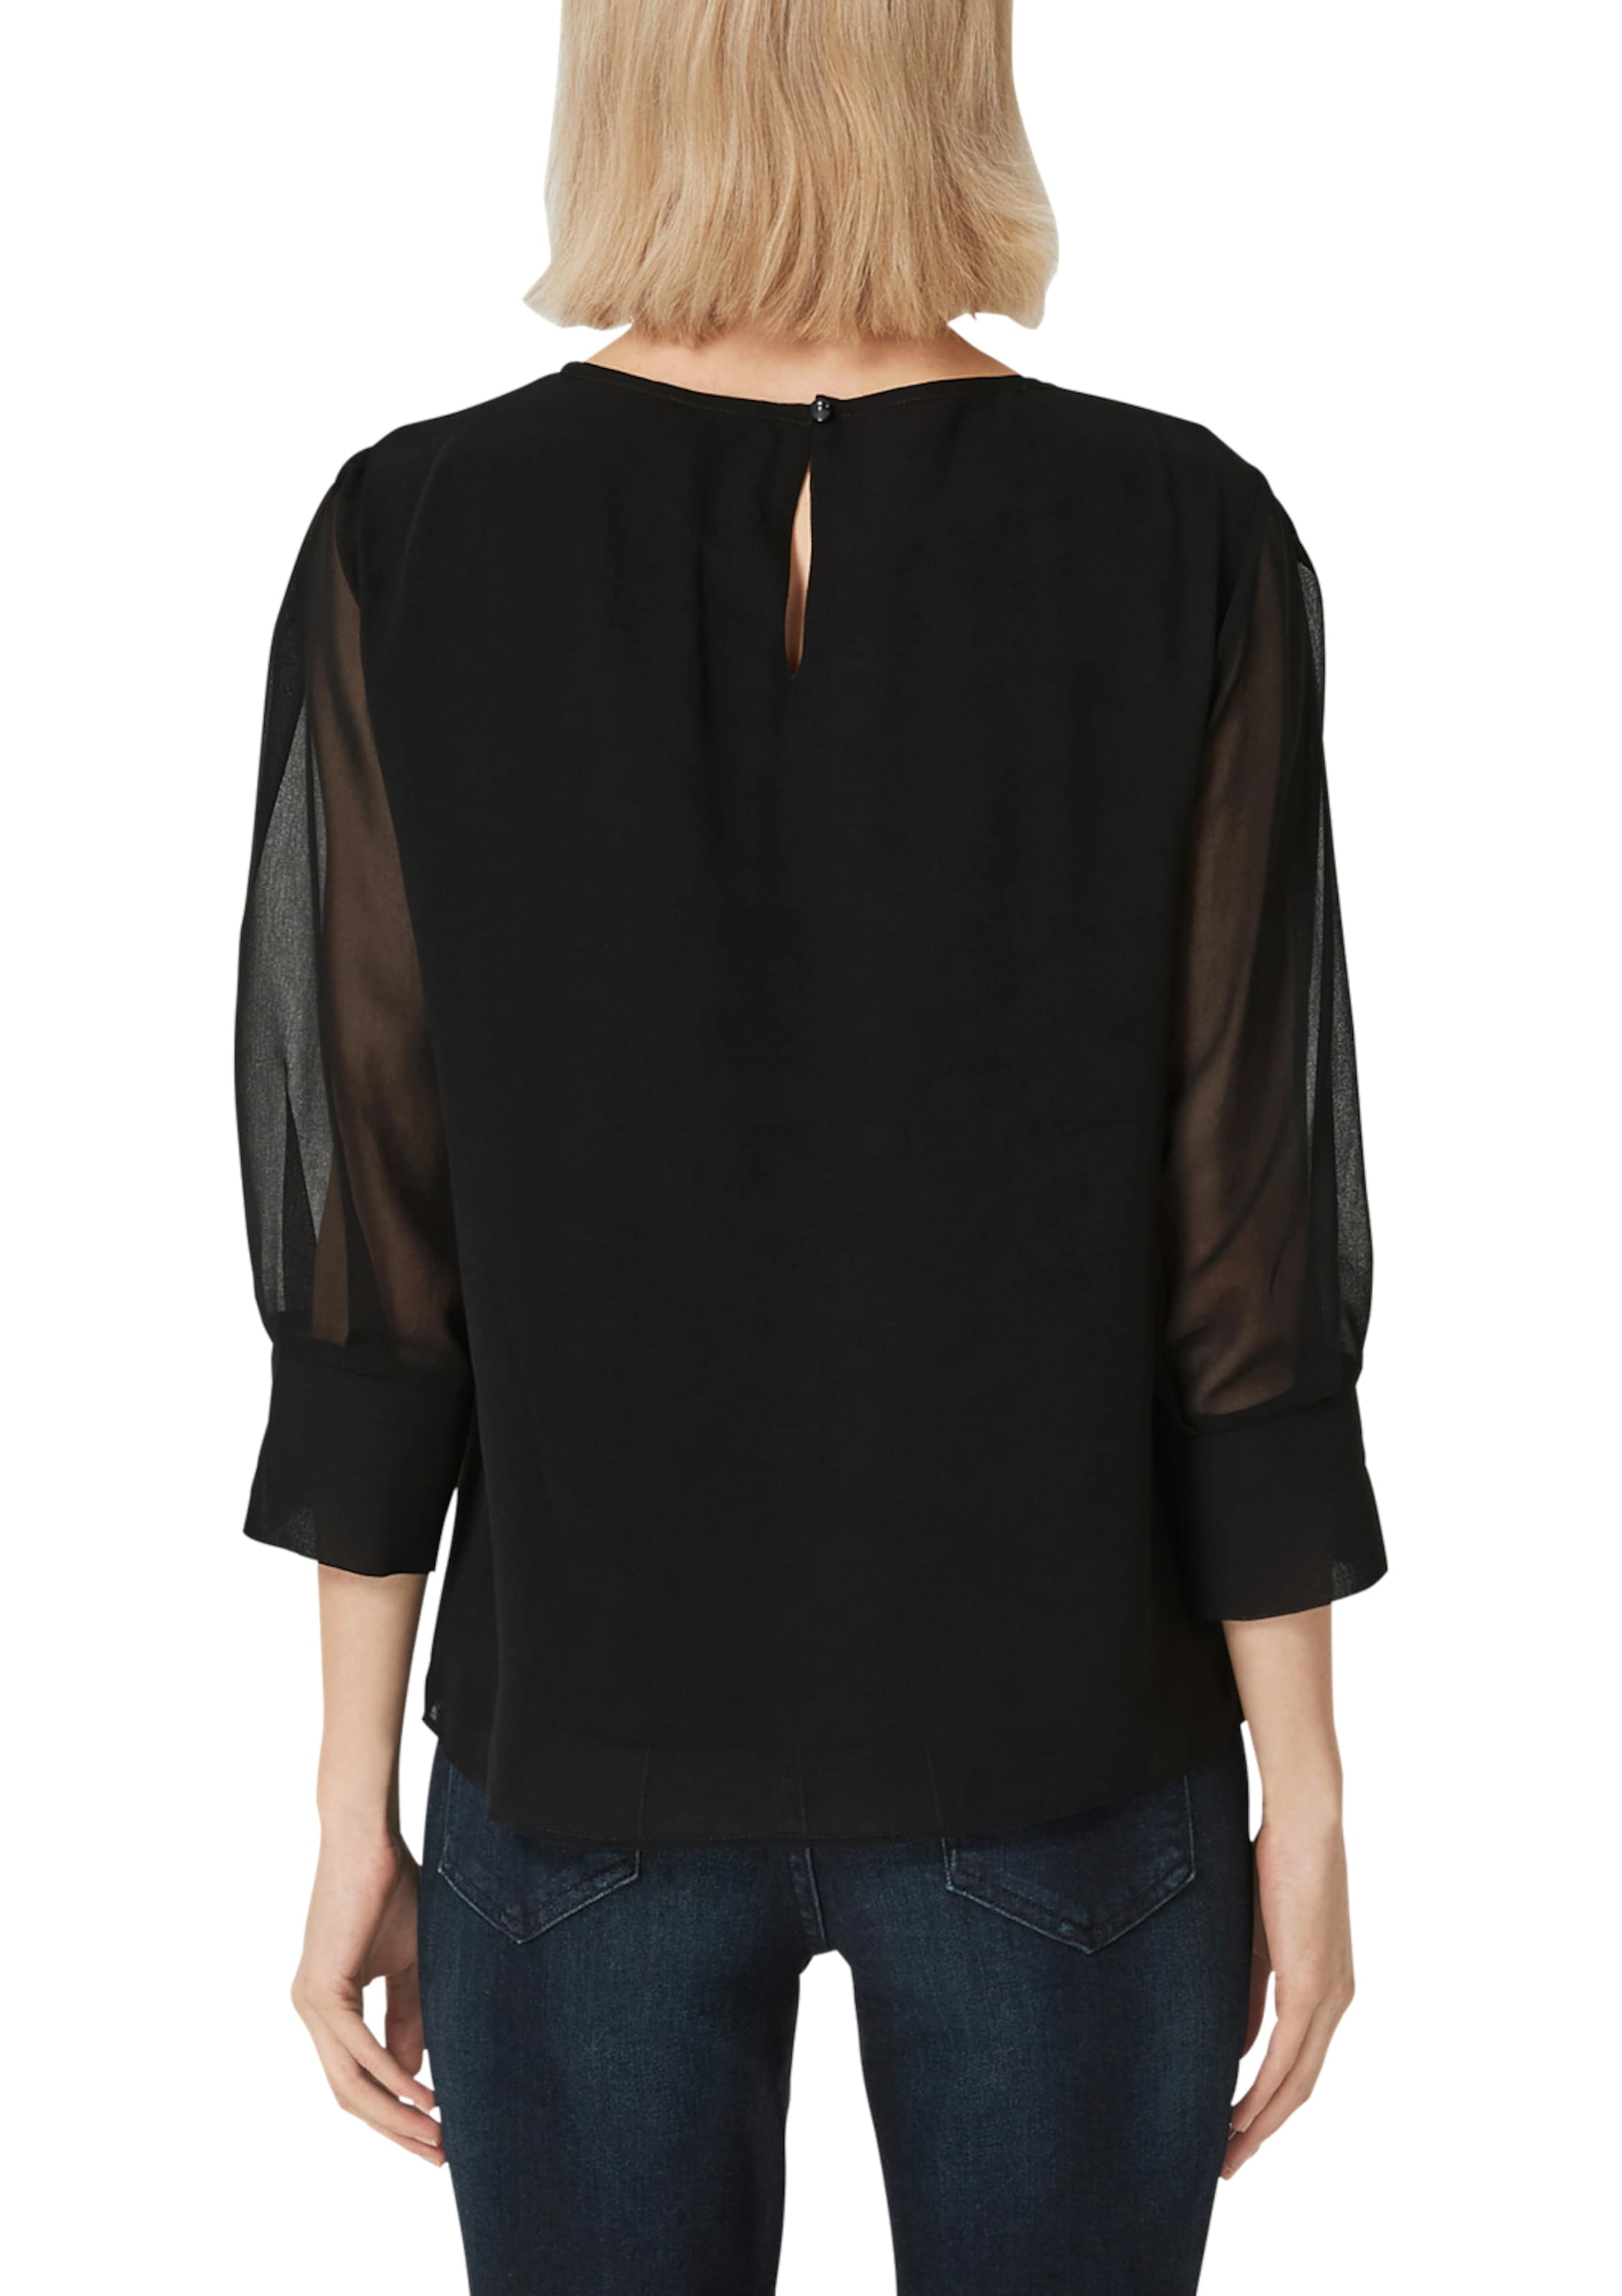 oliver Schwarz Black Bluse Label In S 76vfbyYg